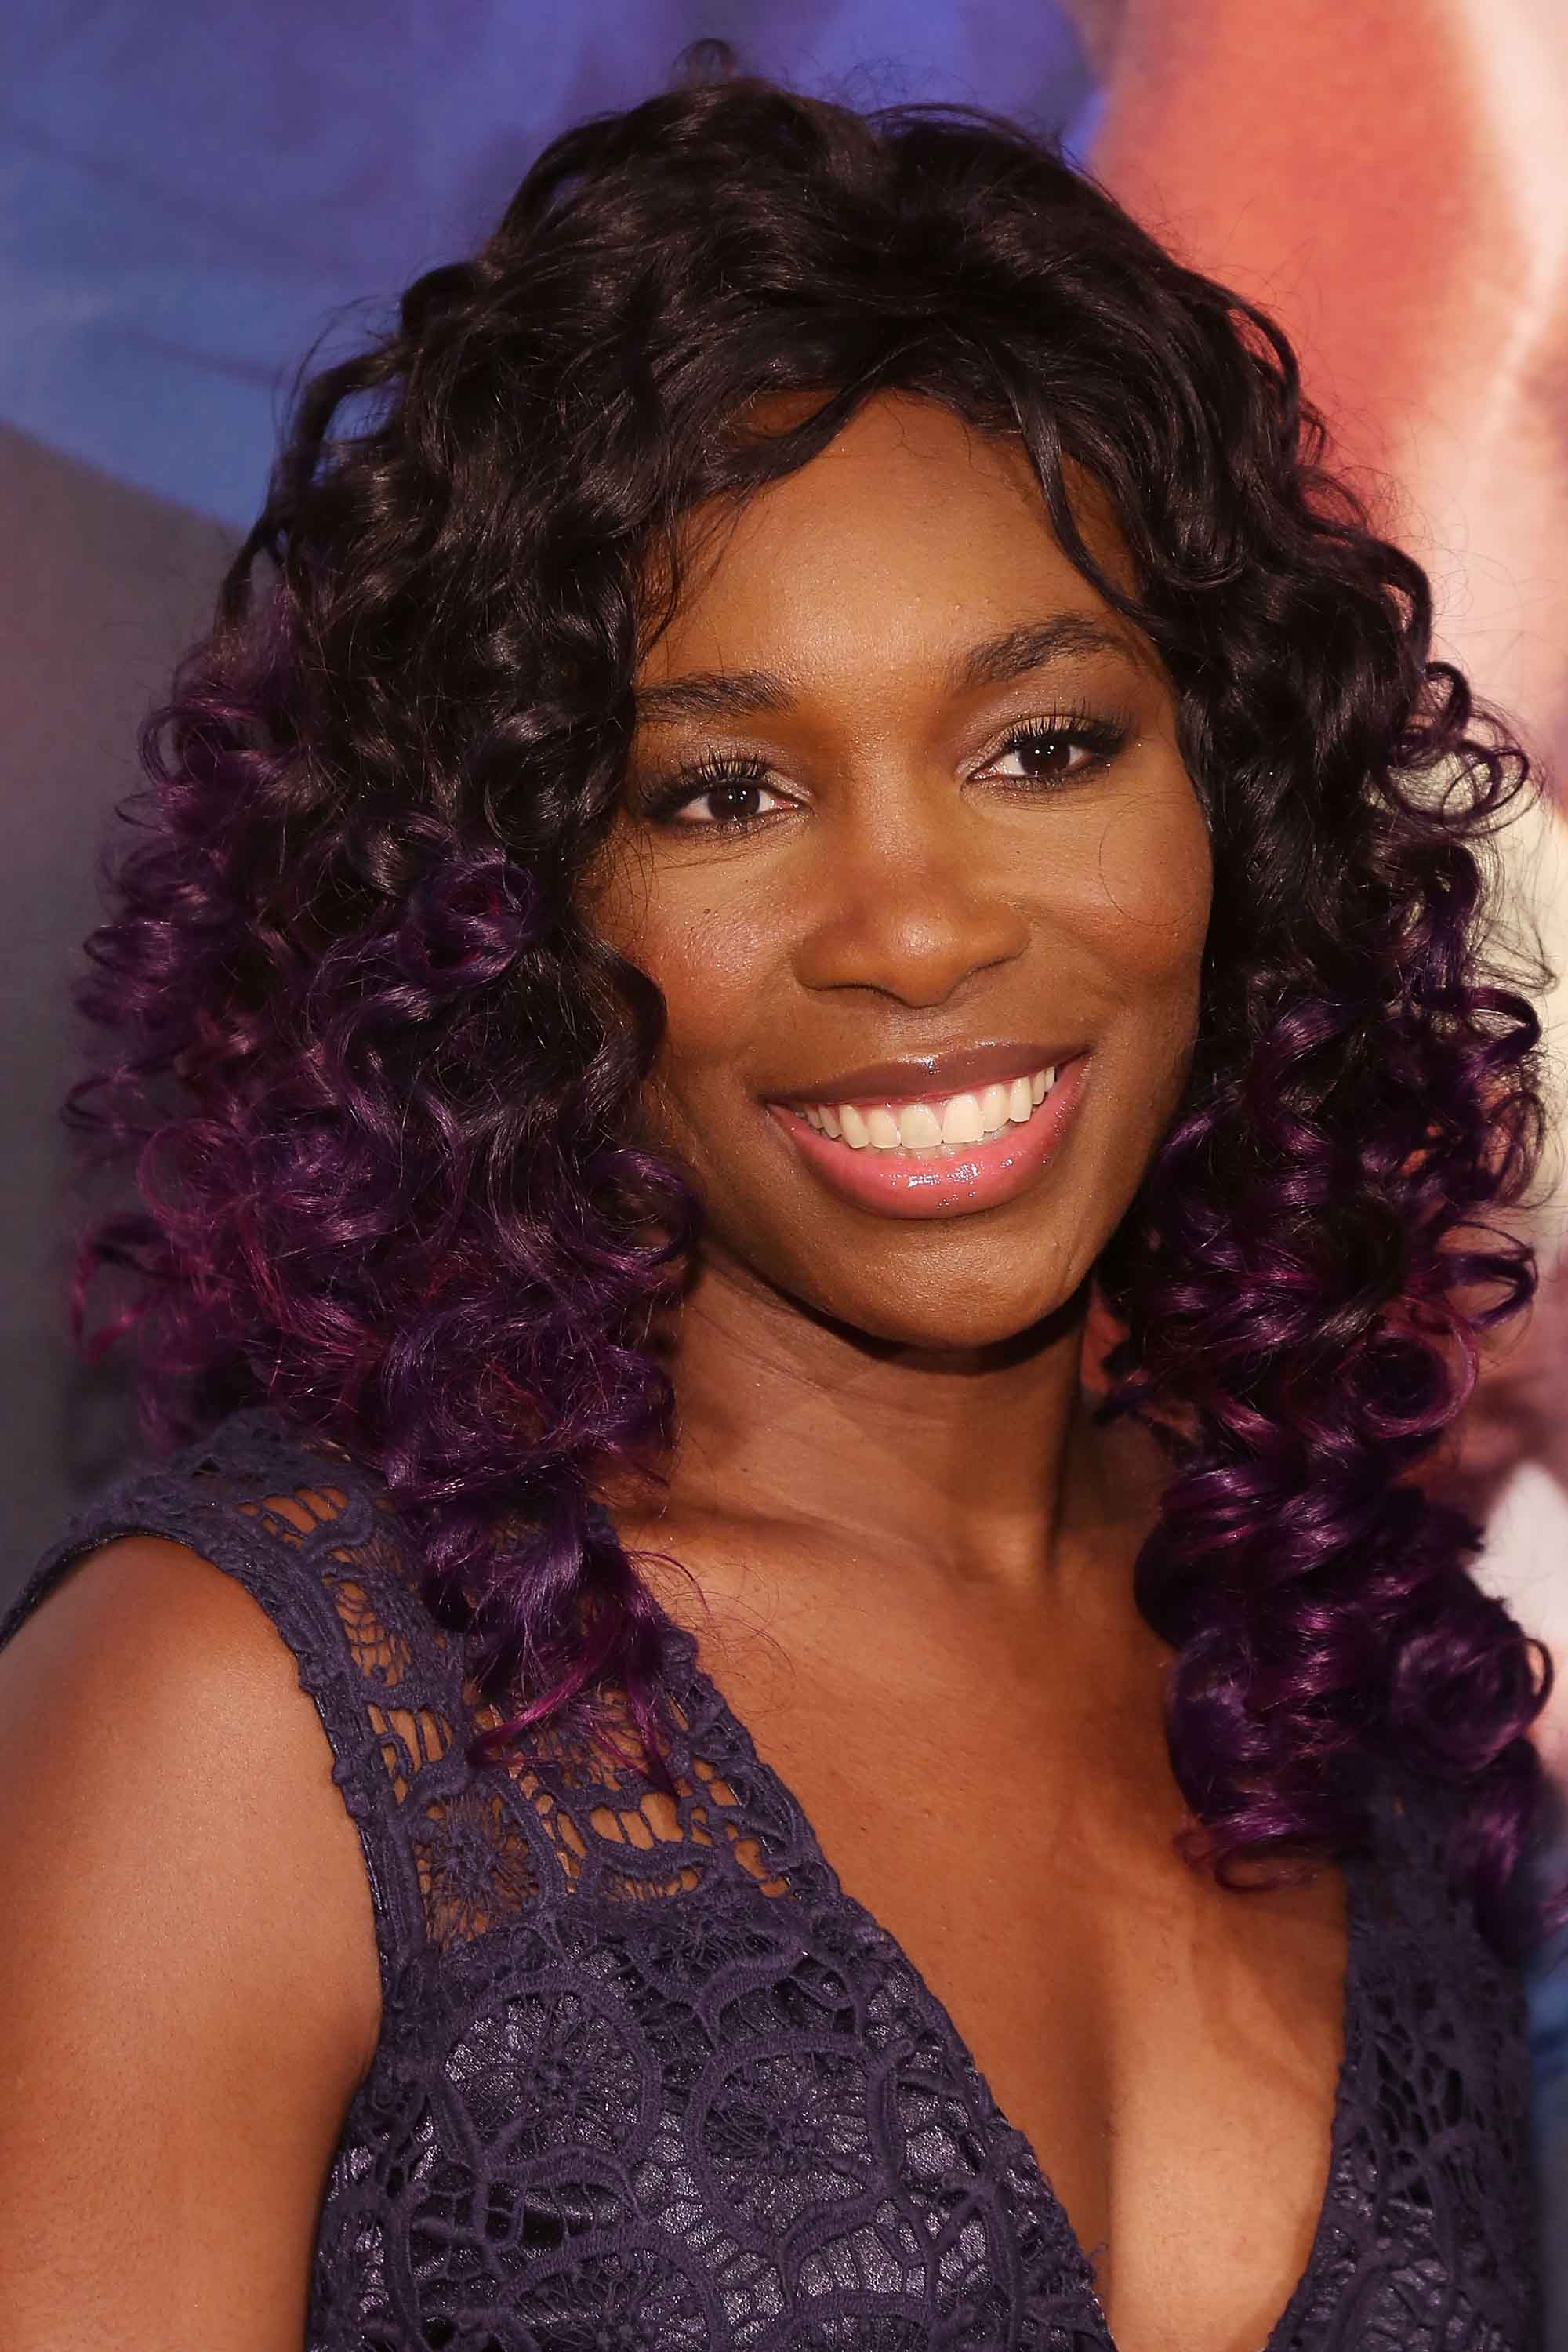 Hairstyles for athletes Venus Williams tennis